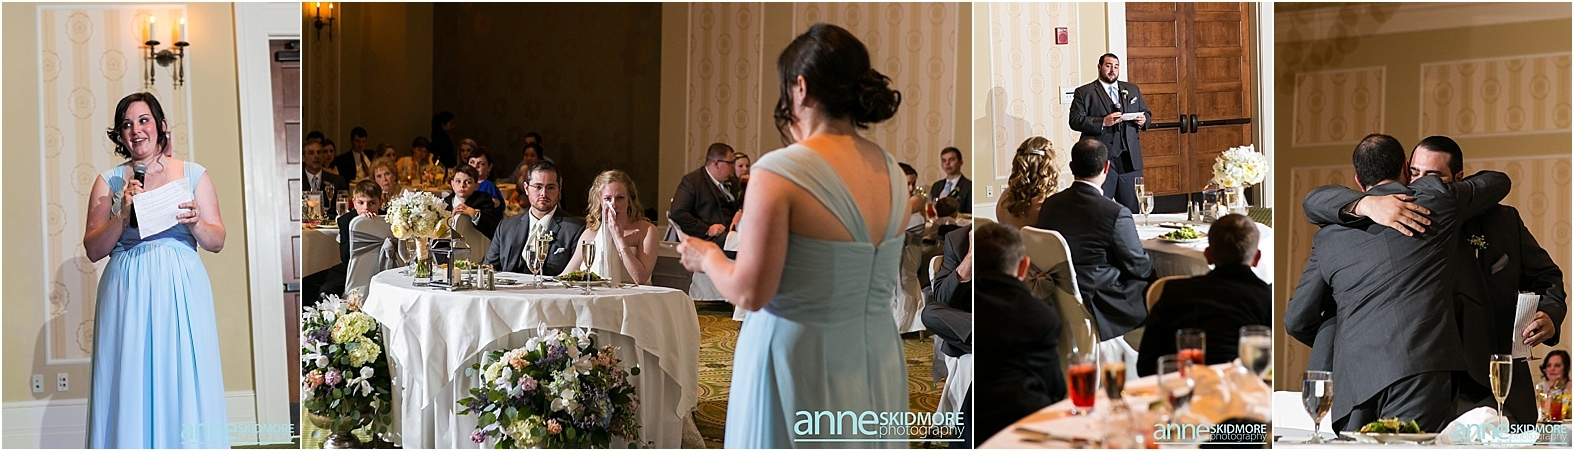 Mount_Washington_Hotel_Wedding_0046